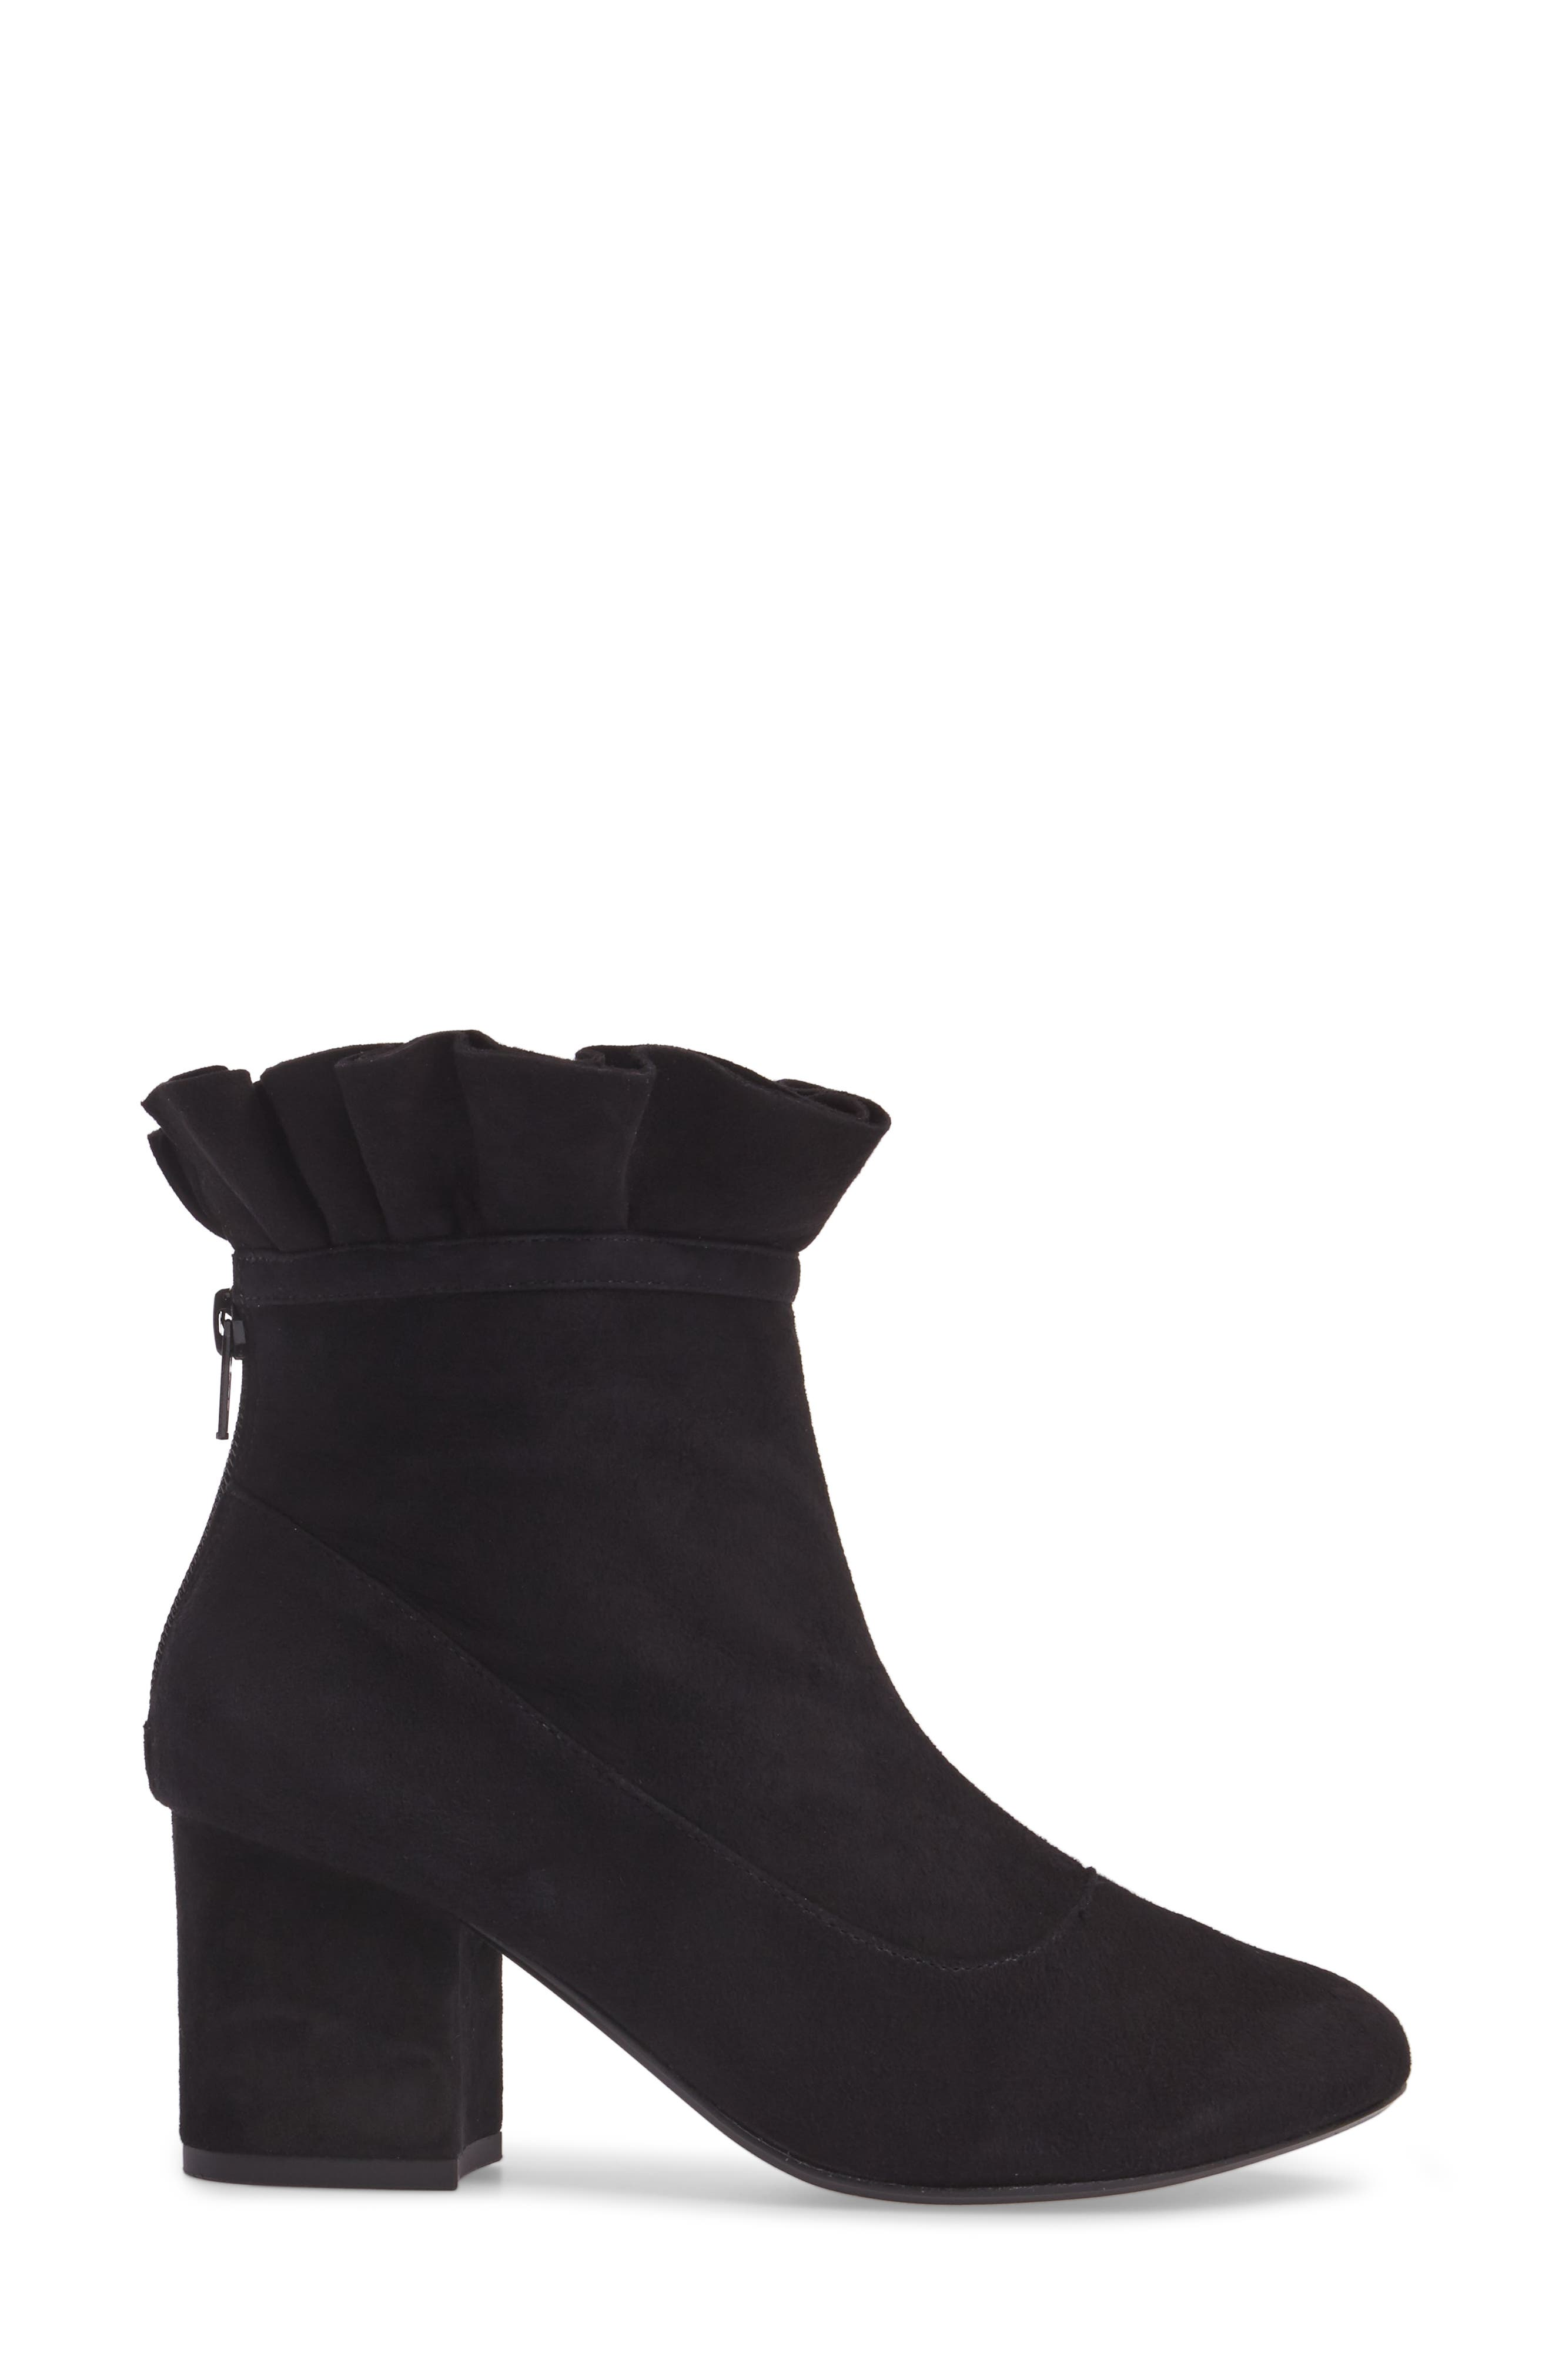 Mackie Bootie,                             Alternate thumbnail 3, color,                             001